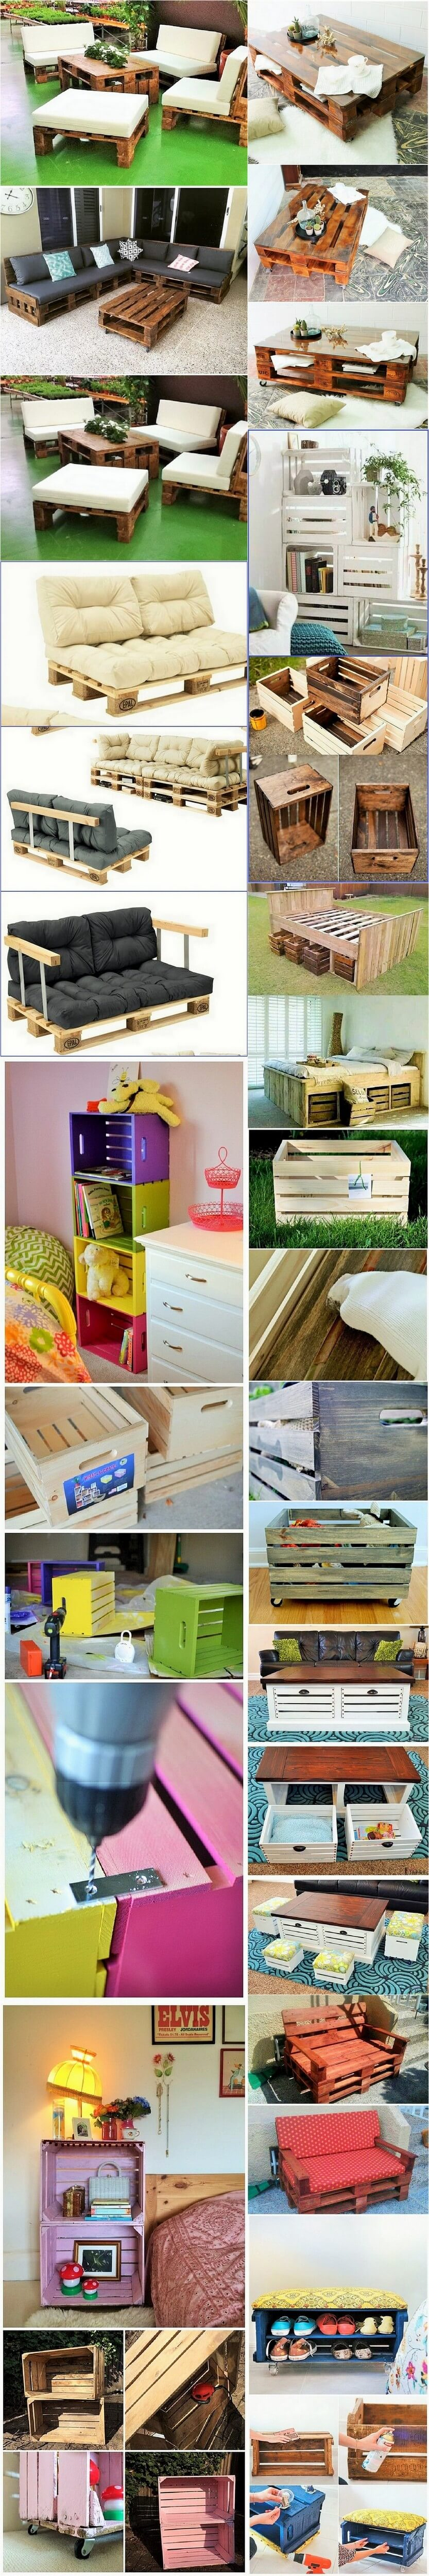 DIY- Wood-Pallets -Projects (2)